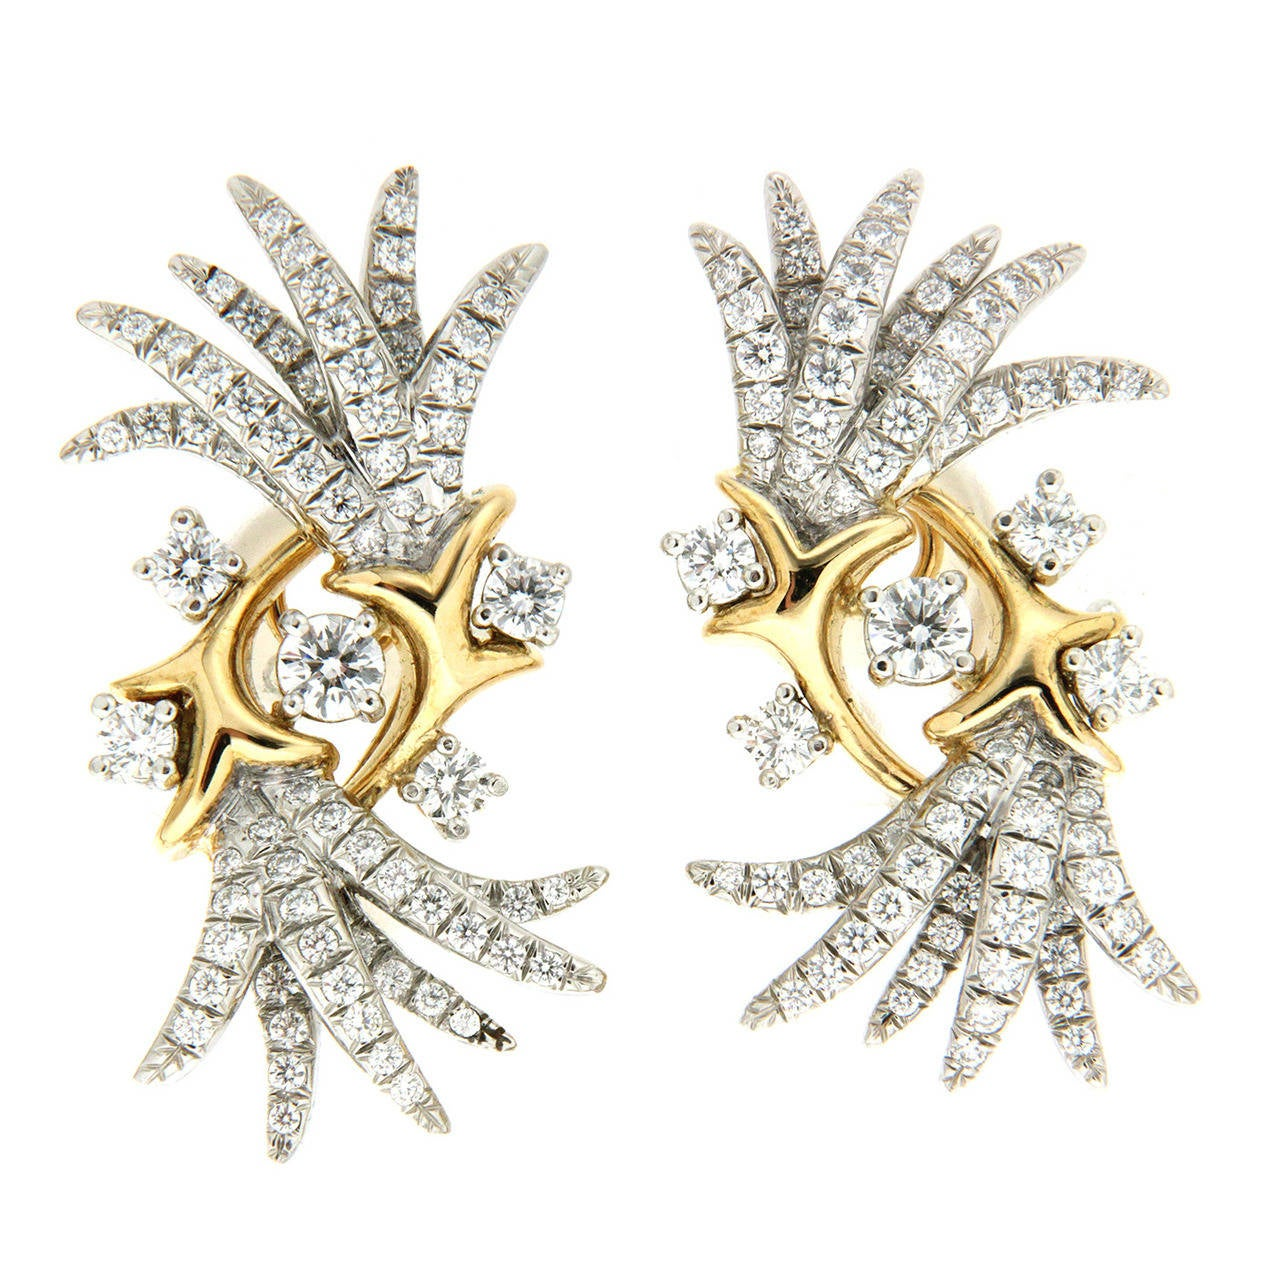 Valentin Magro Fountain of Dazzle Diamond Gold Platinum Earrings